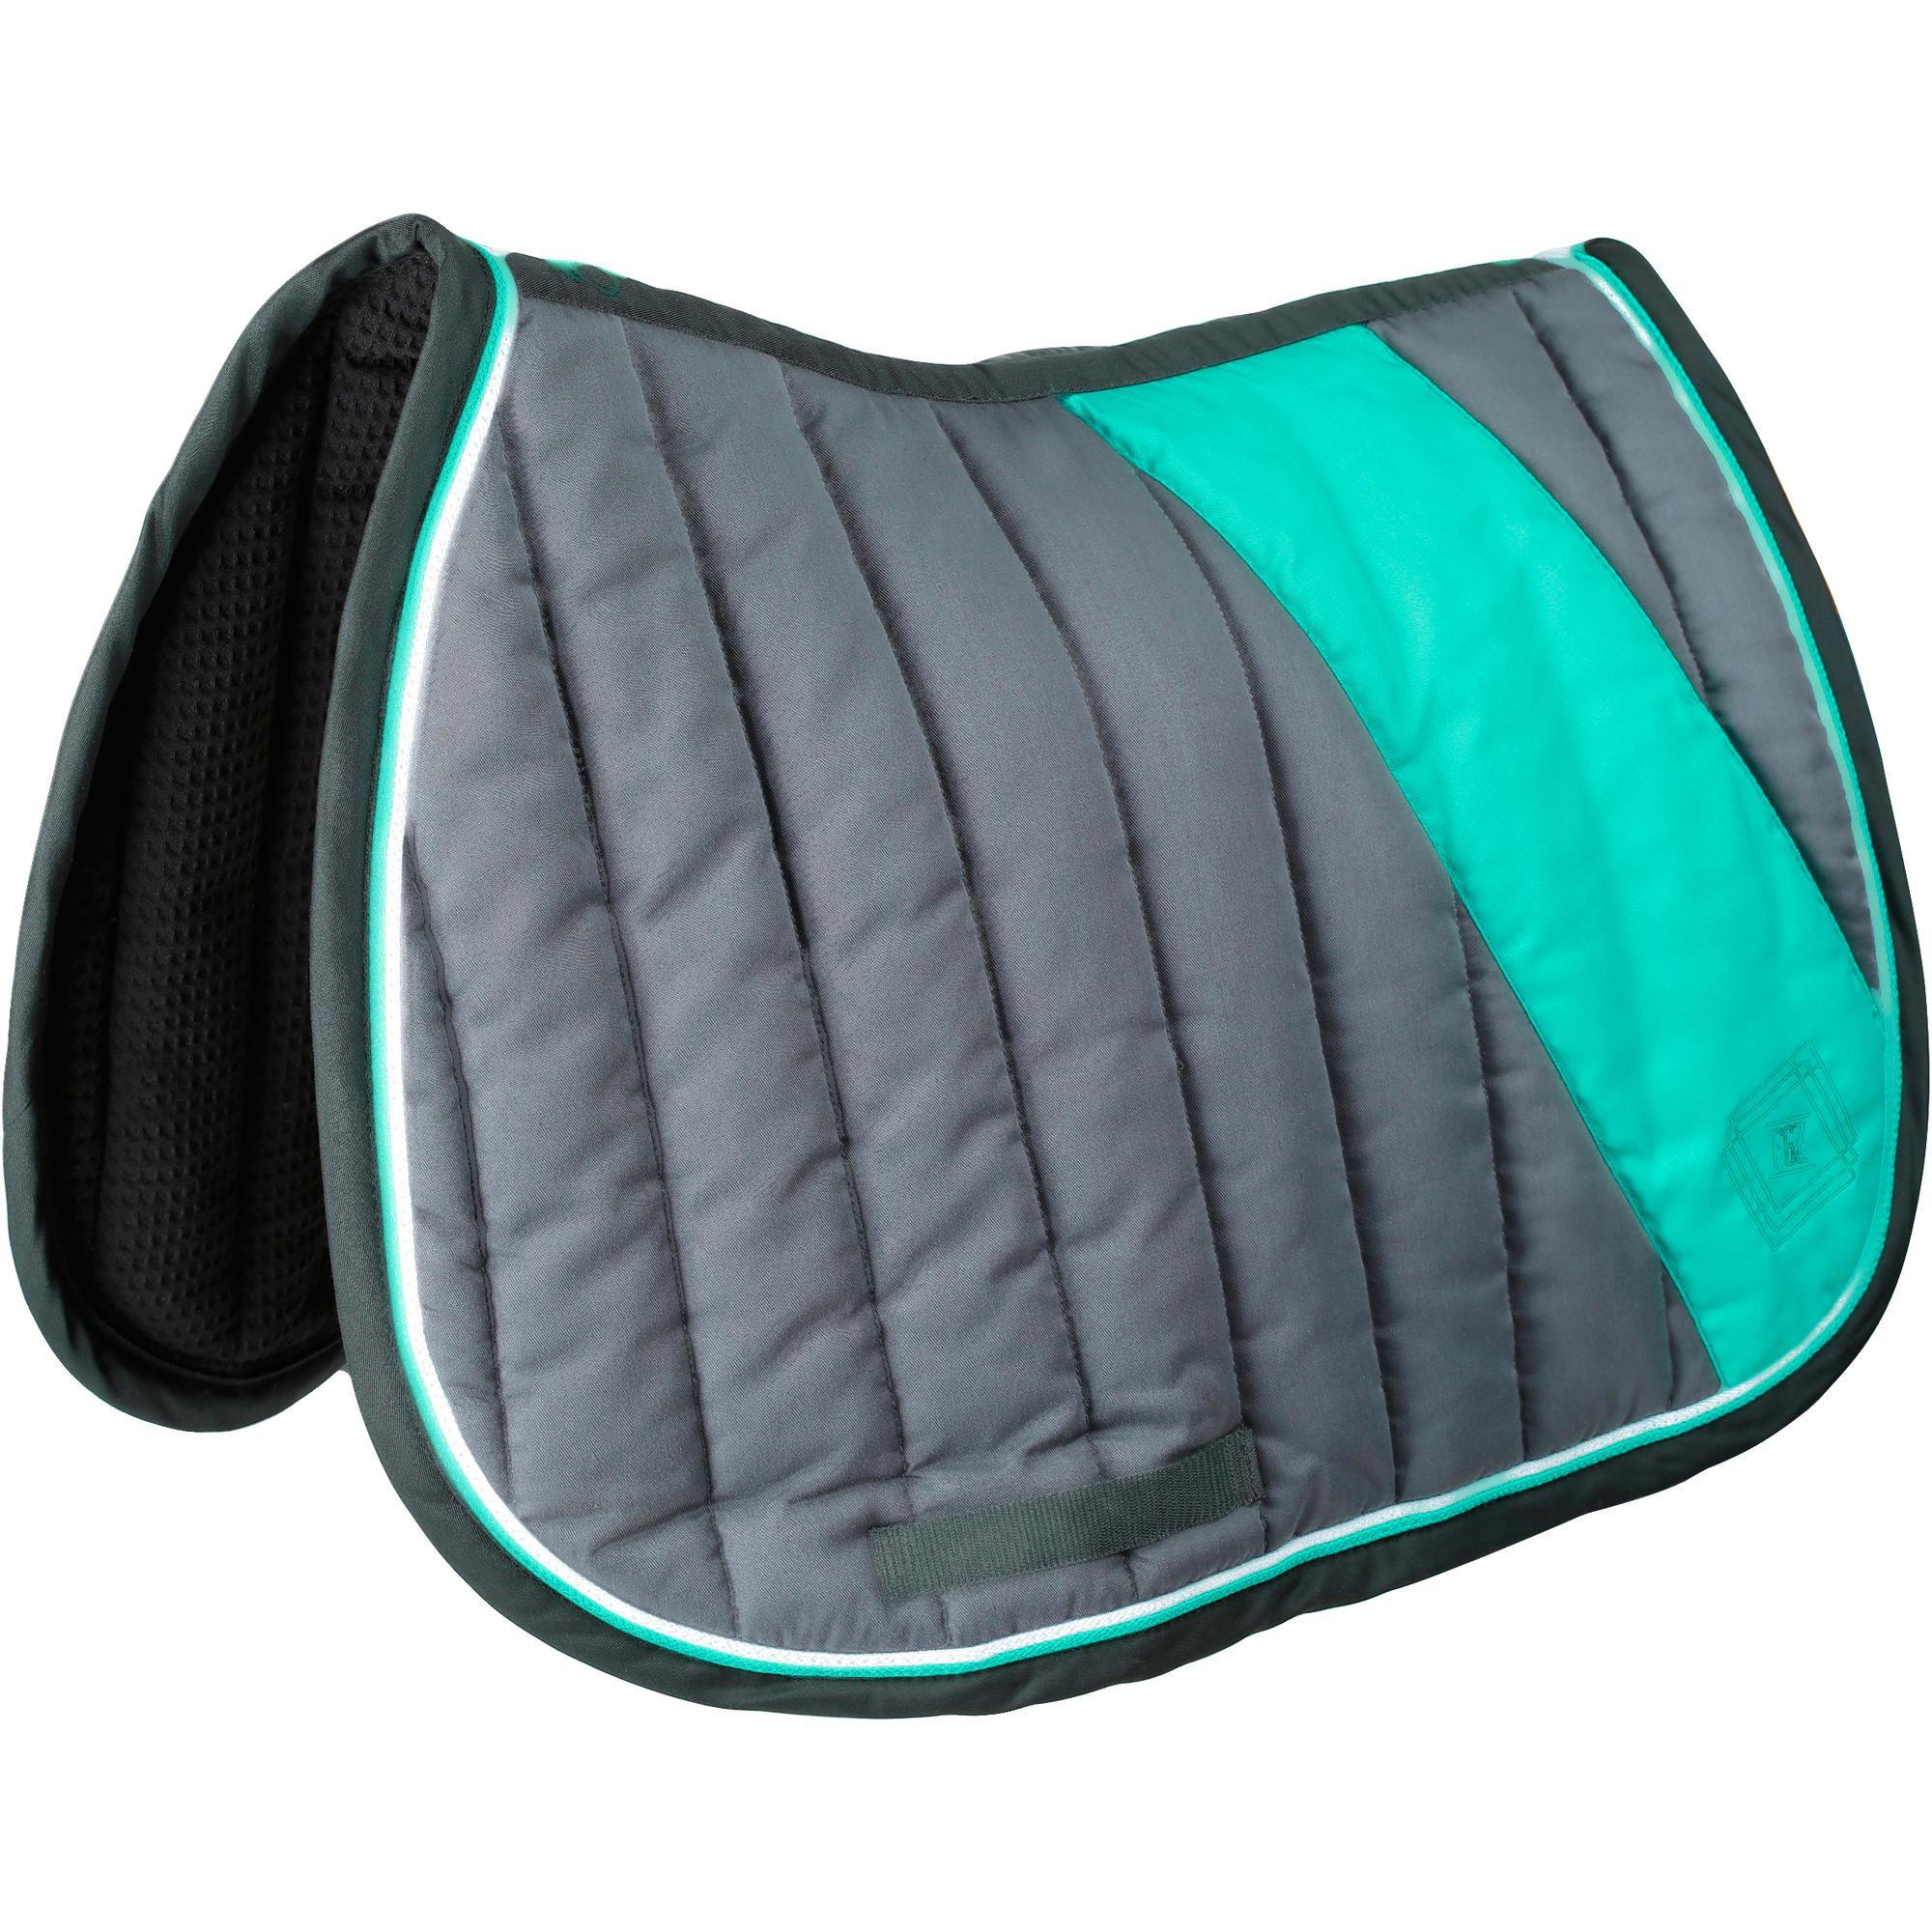 Tapis De Selle Quitation Cheval Jump Vert Fouganza